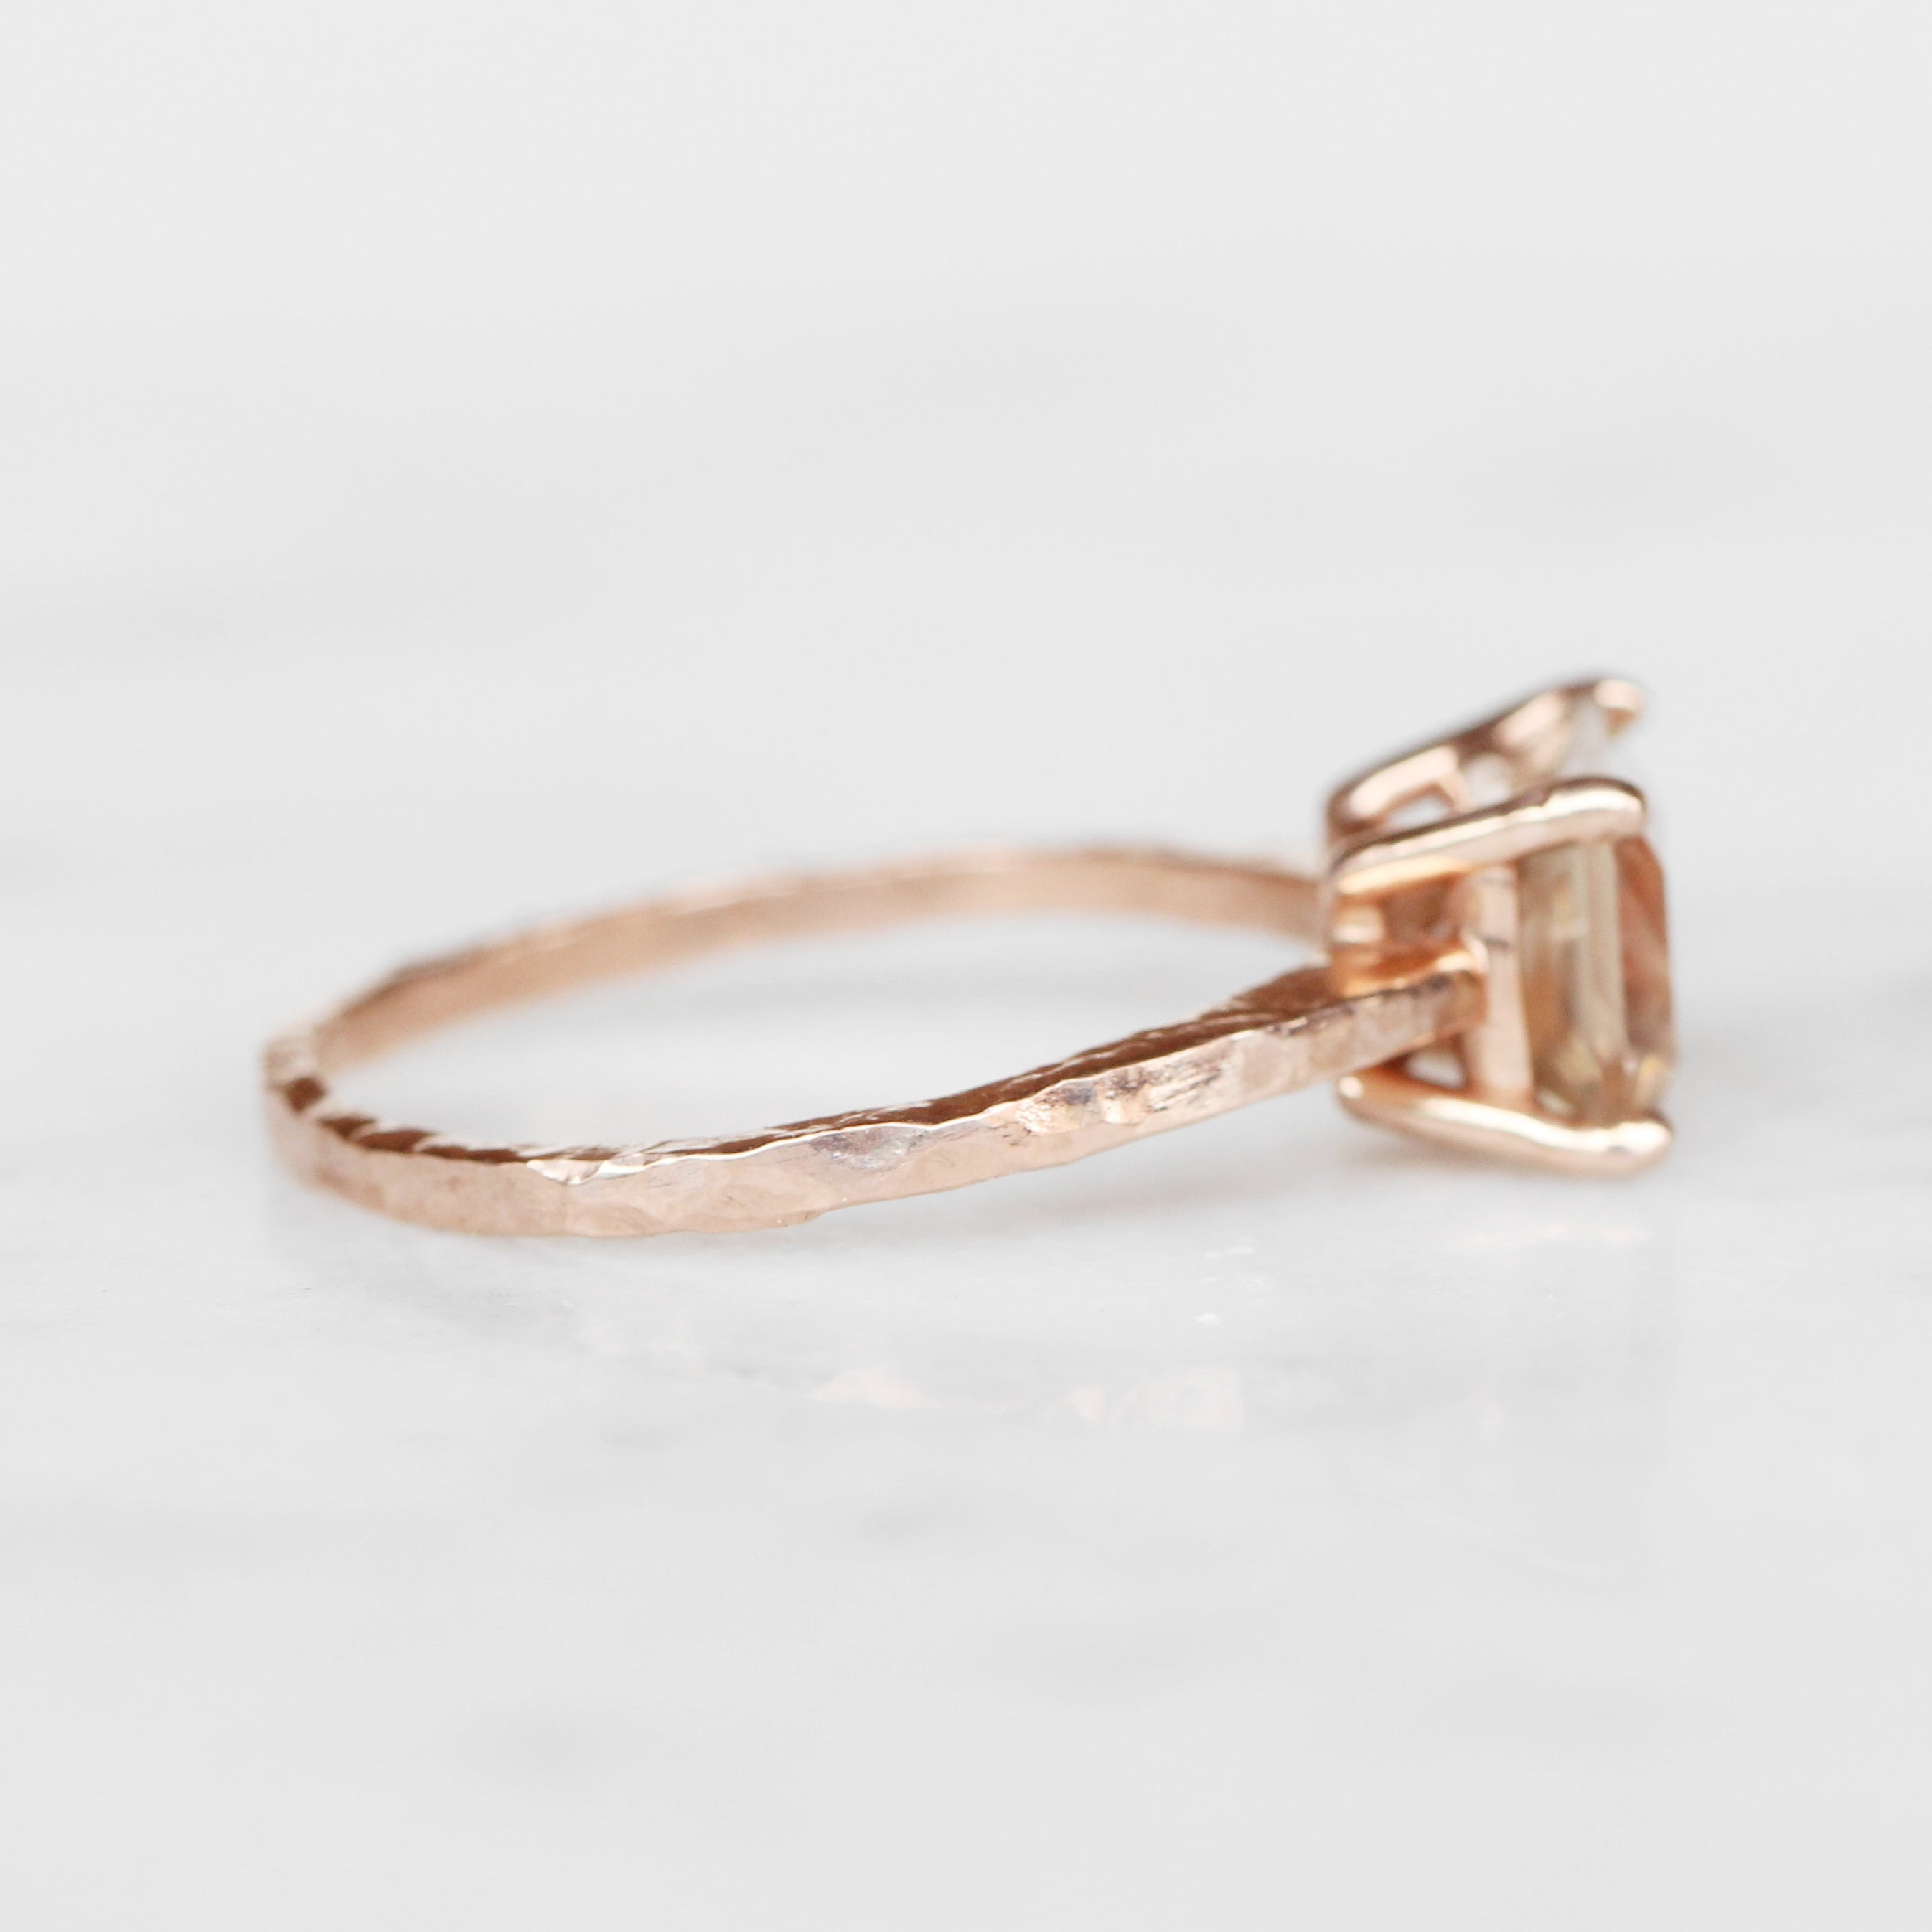 Ruthie Ring with 2 carat sunstone in 10k rose gold - ready to size and ship - Celestial Diamonds ® by Midwinter Co.